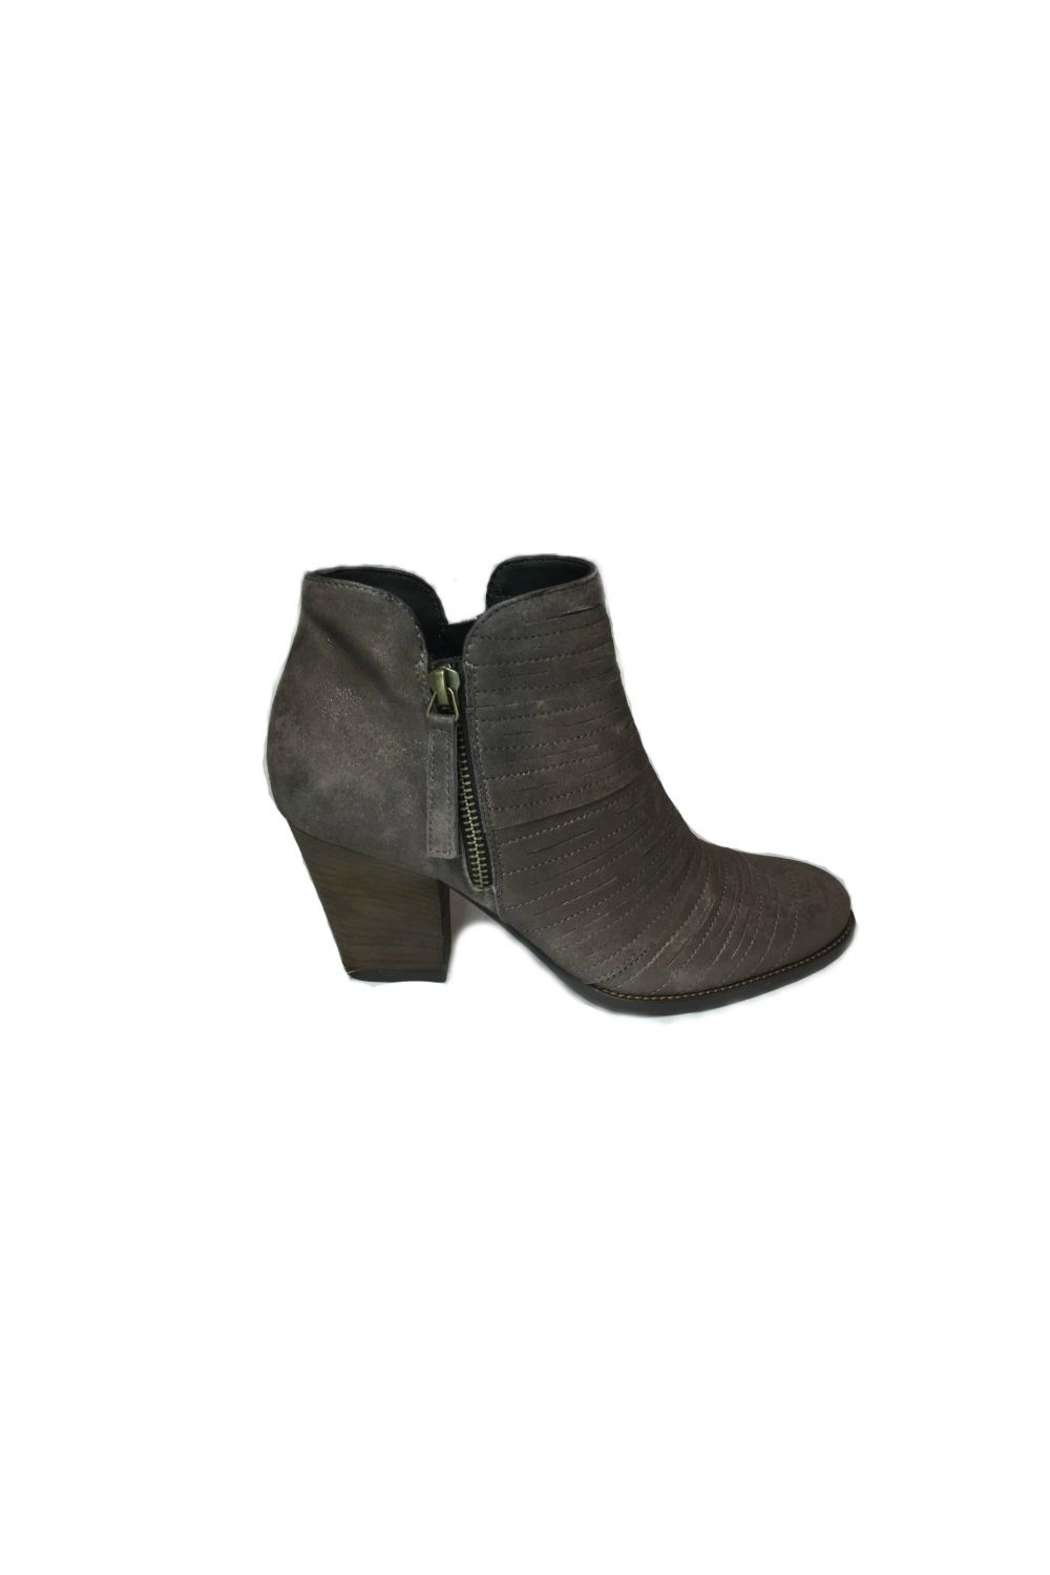 Paul Green Metallic Malibu Bootie - Front Full Image